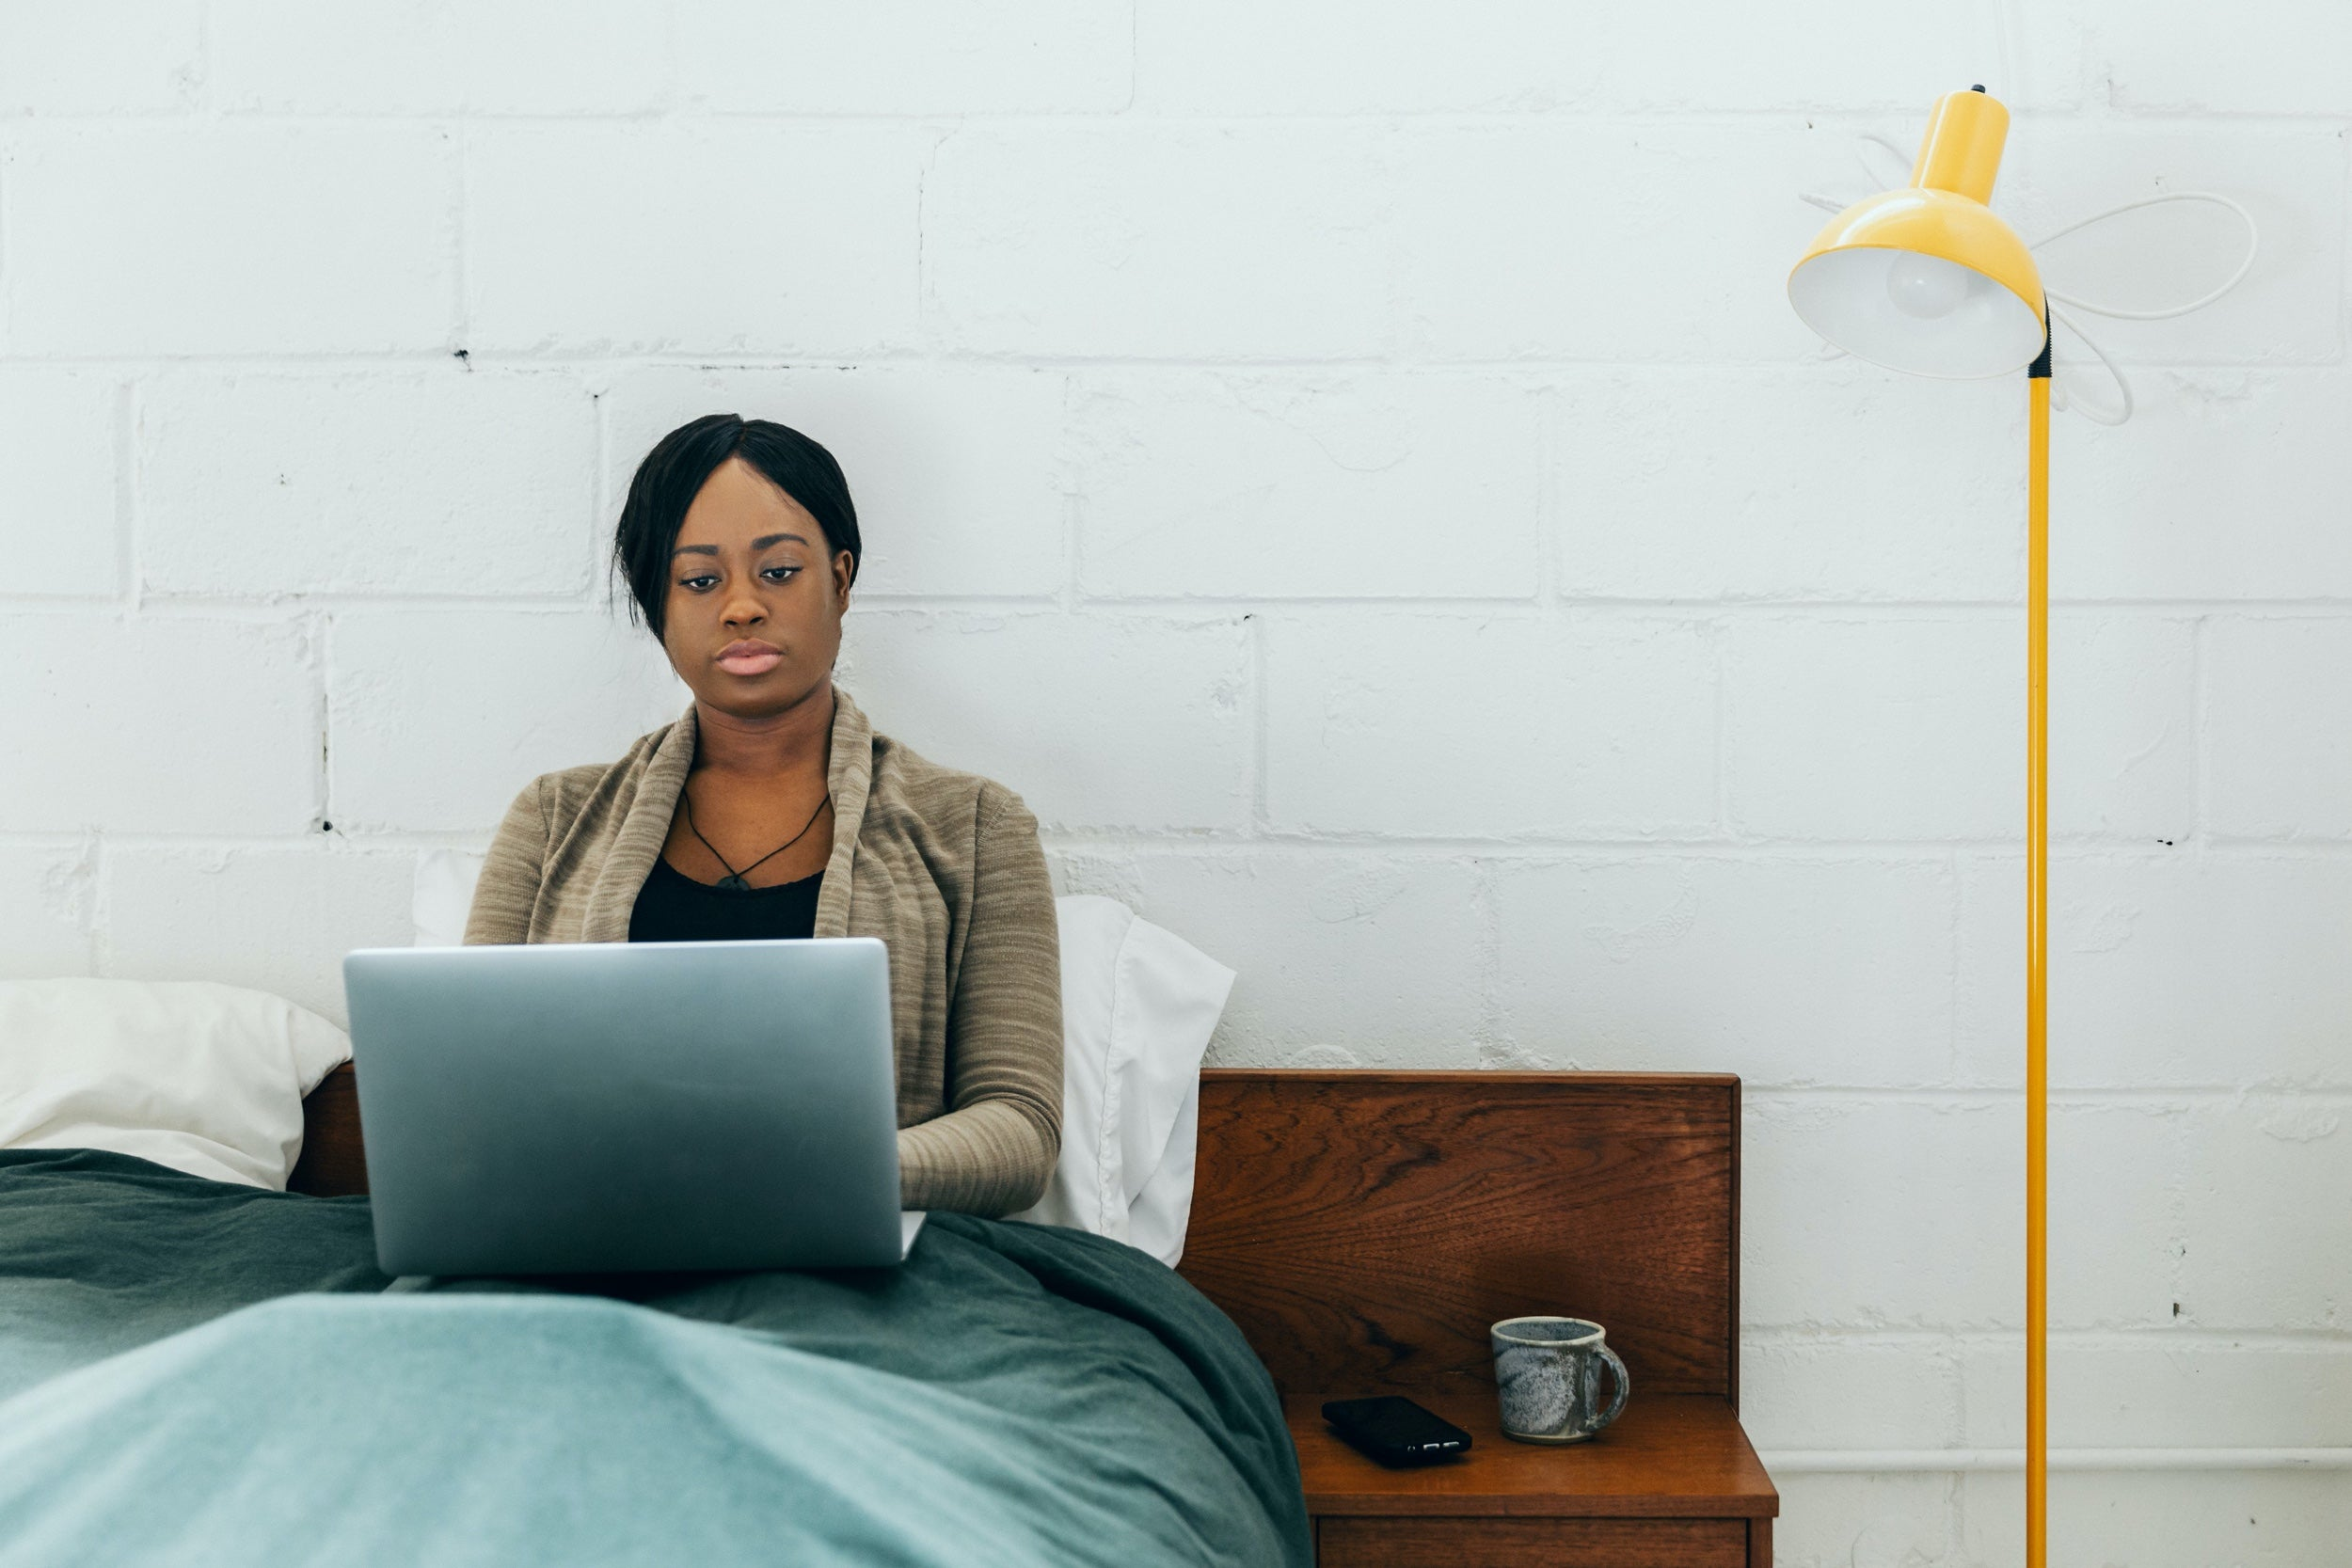 A woman works on a laptop in bed